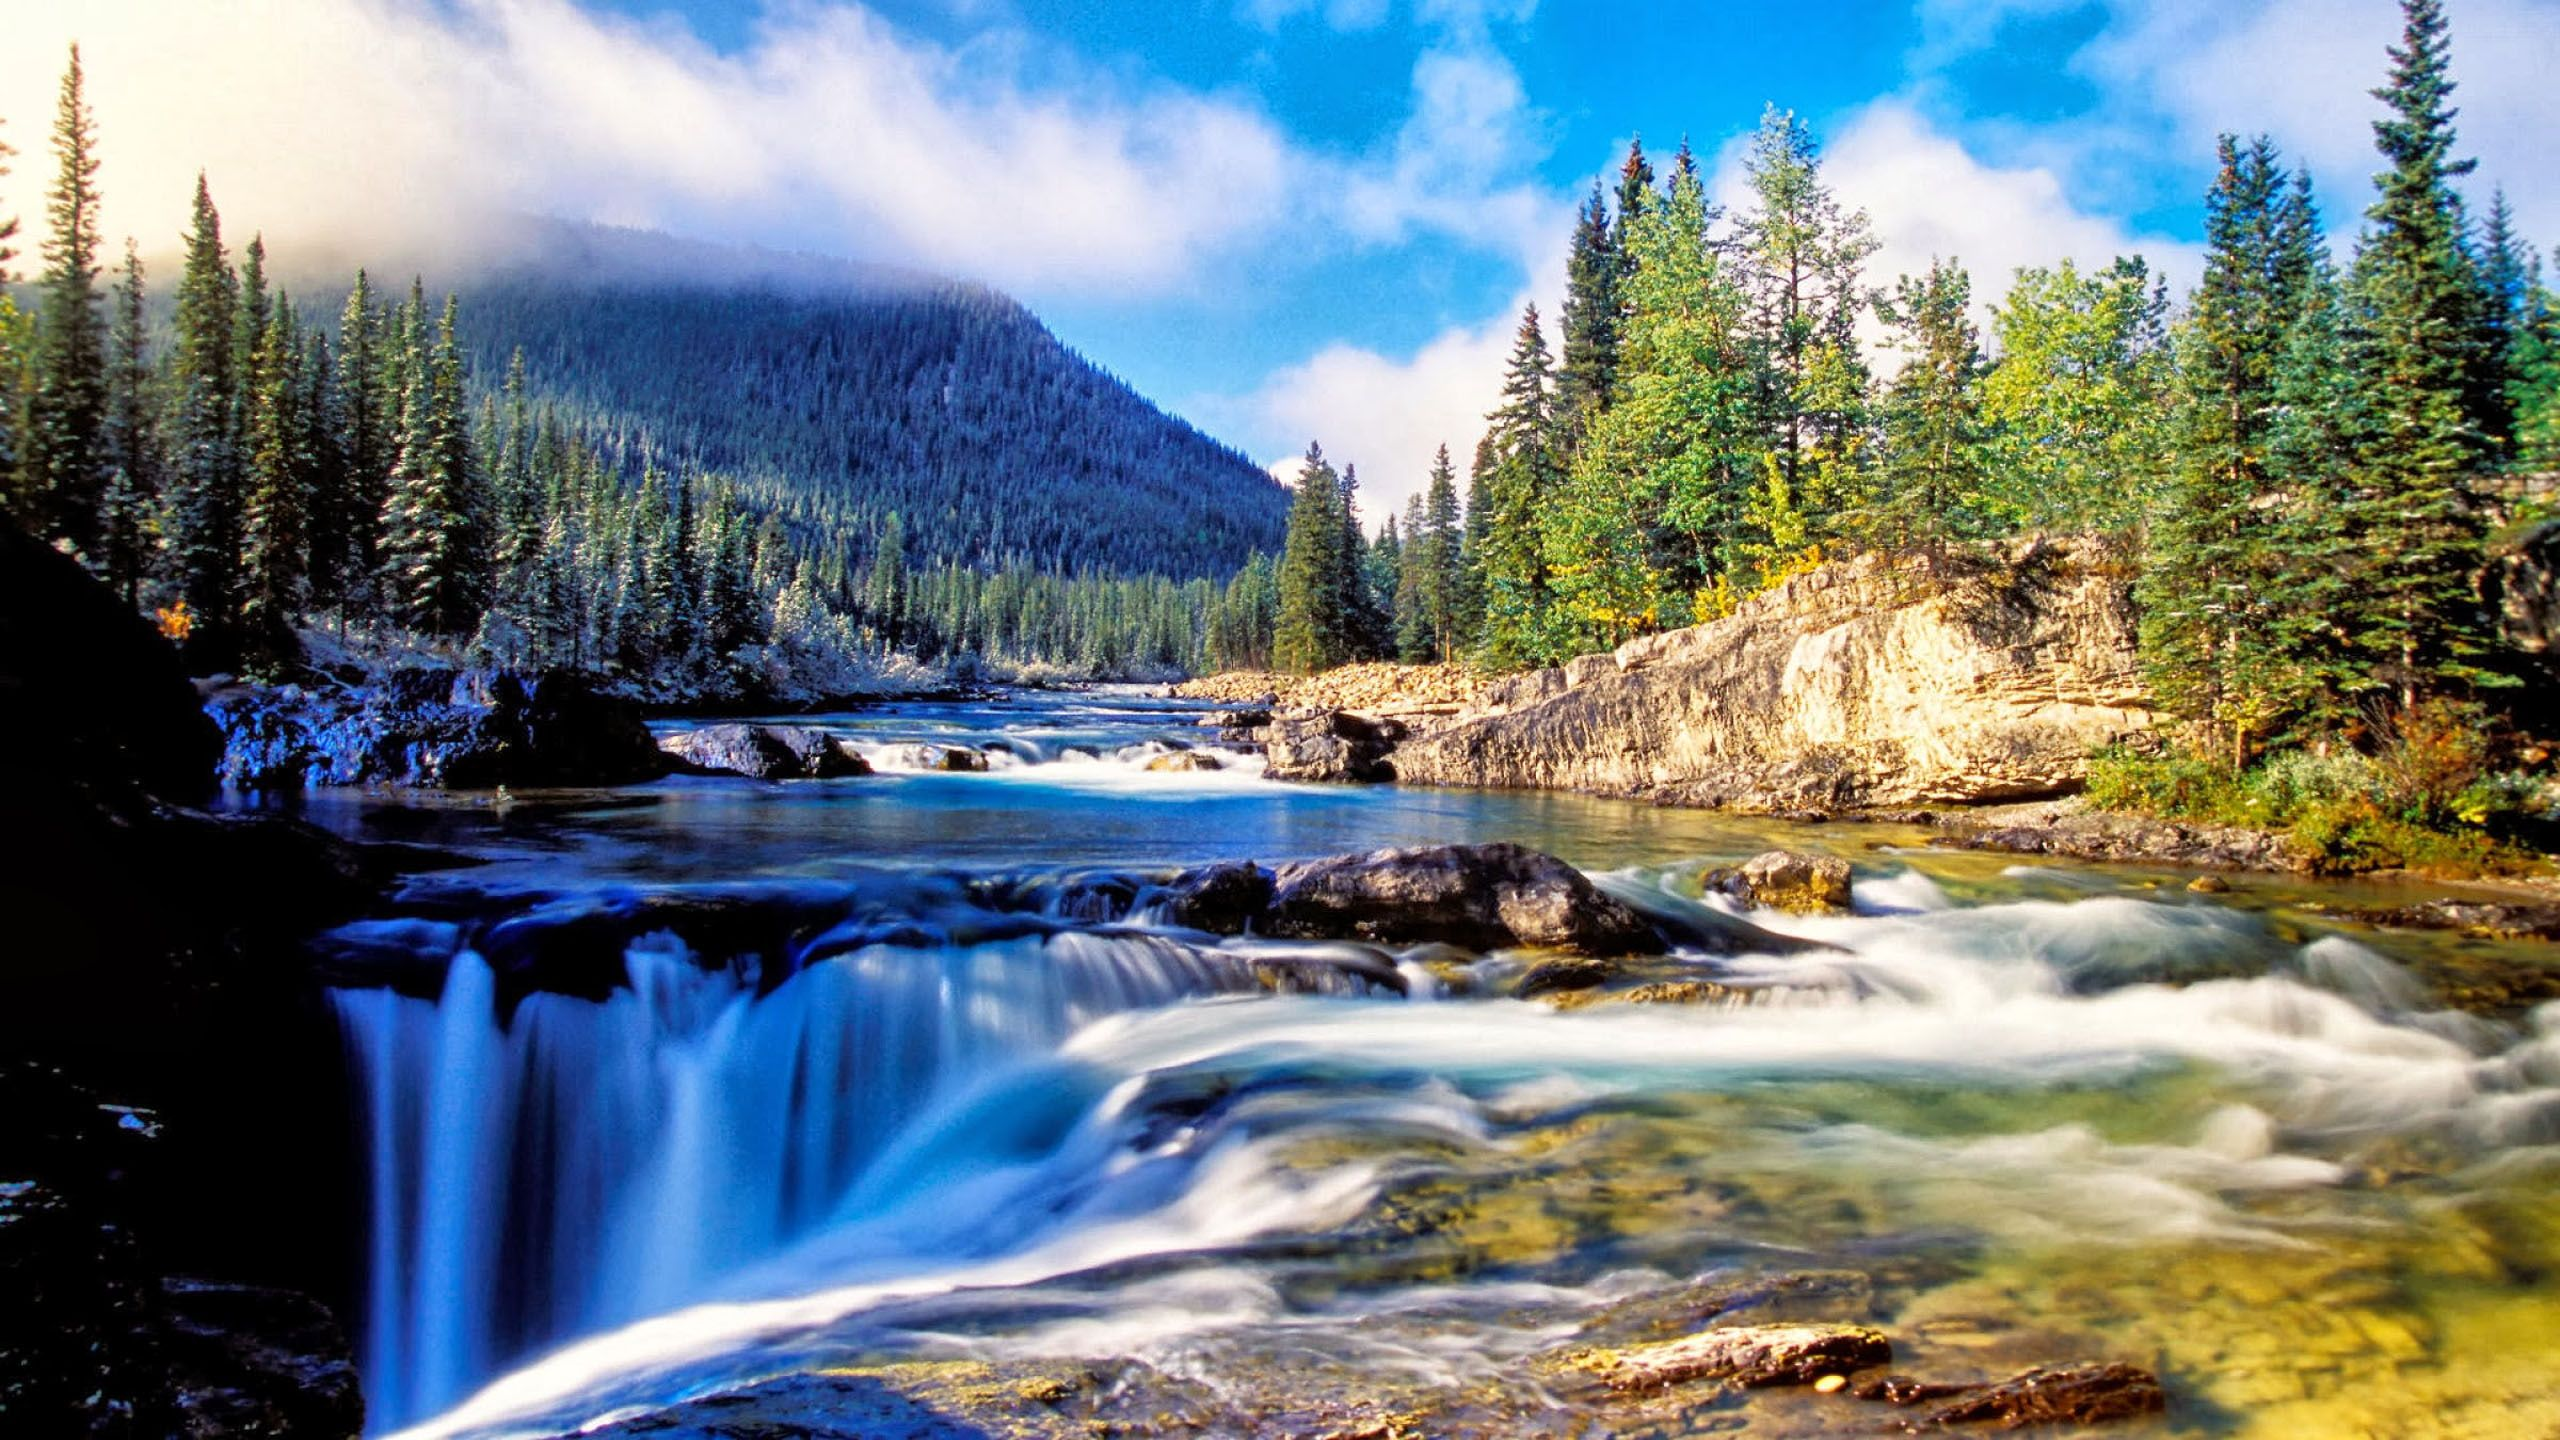 Nature Mountain Dense Spruce Forest River Rock Waterfall Background 2k Wallpaper Hdw In 2020 Waterfall Wallpaper Beautiful Landscape Wallpaper Beautiful Landscapes